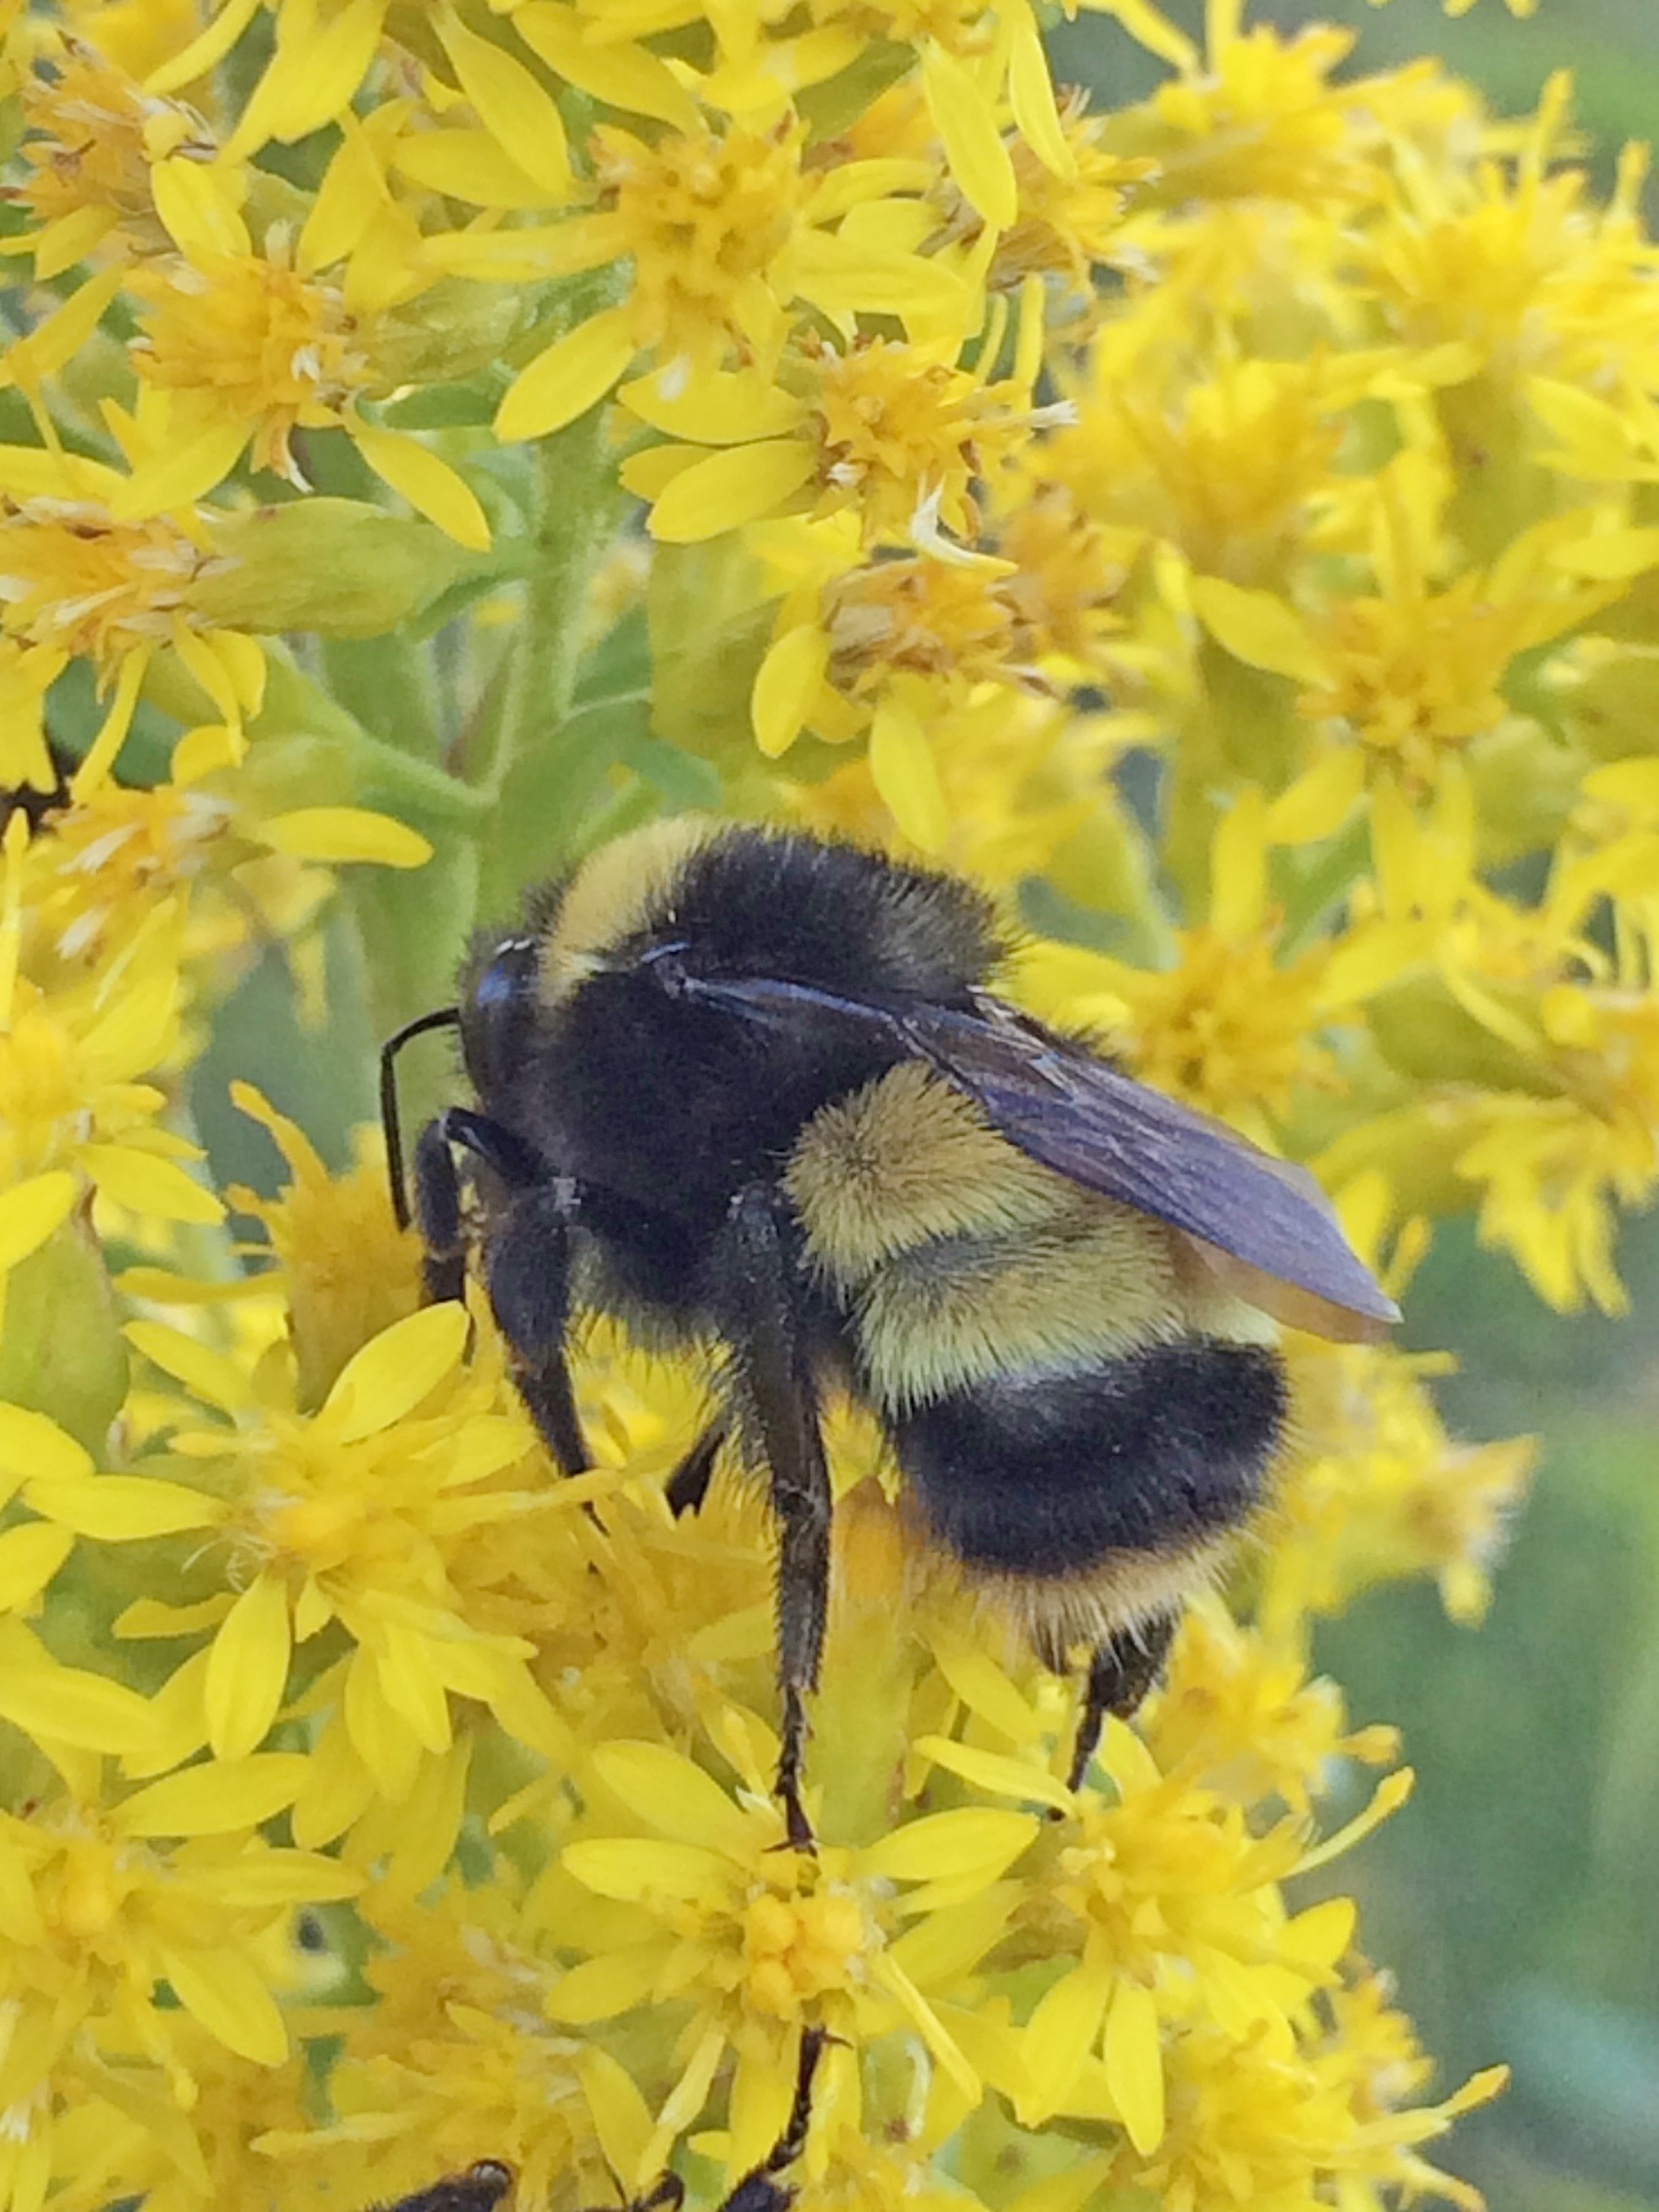 A bumble bee with two yellow bands in the center of its body pollinates a cluster of yellow flowers.